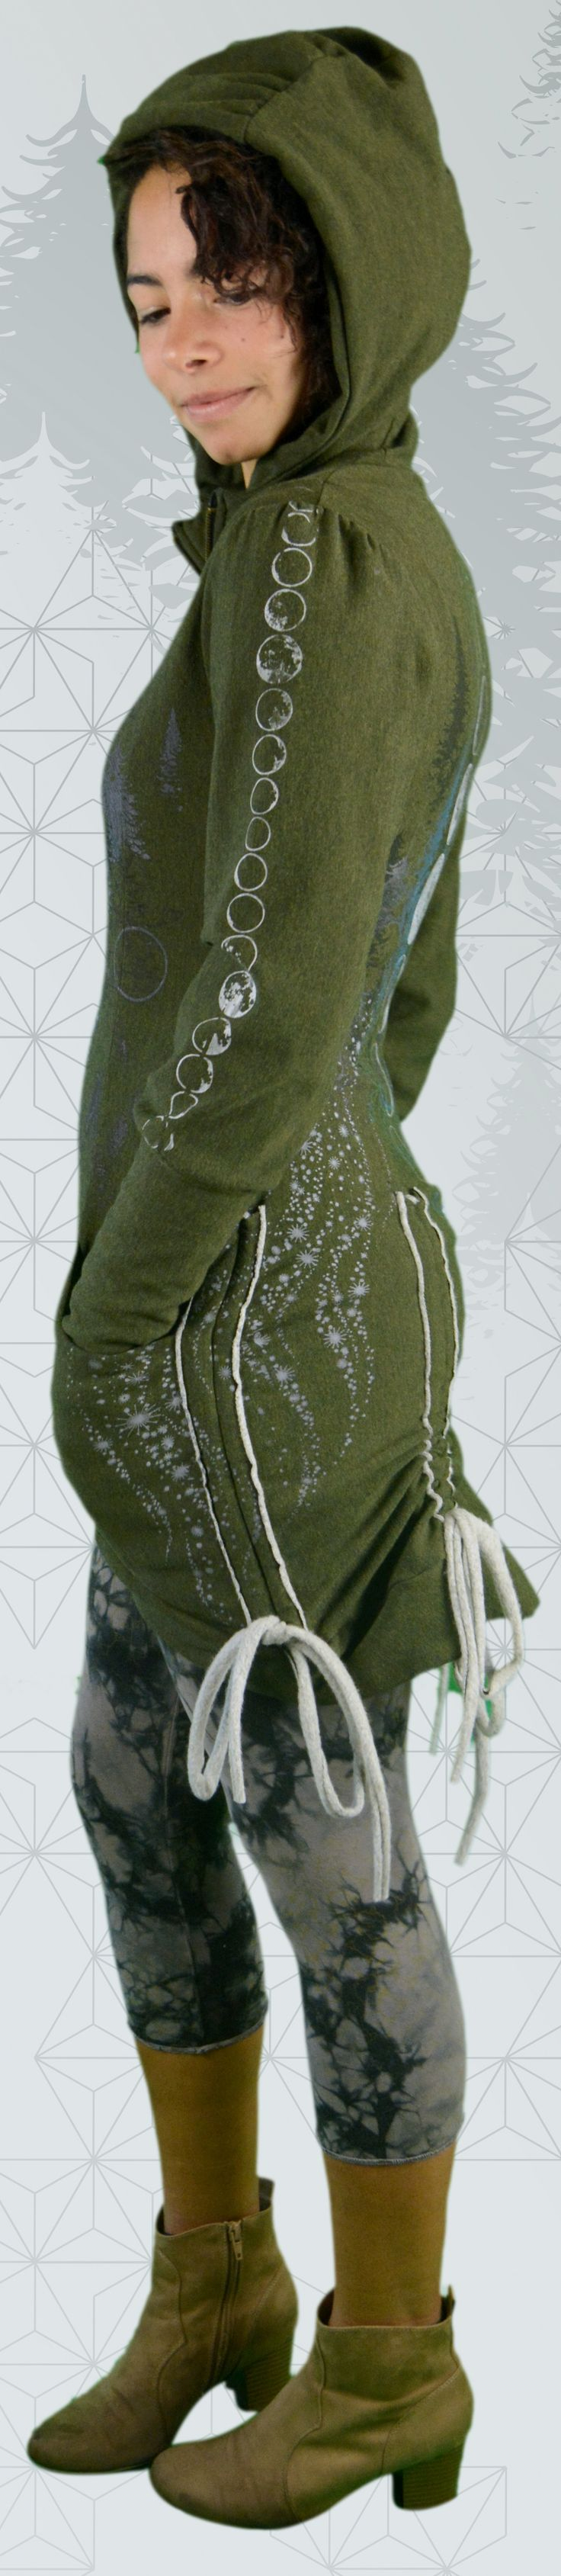 Bamboo Bustle Jacket made in Canada. This organic green women's hoodie is hand printed with moons, moon phases, trees, stars and sacred geometry.